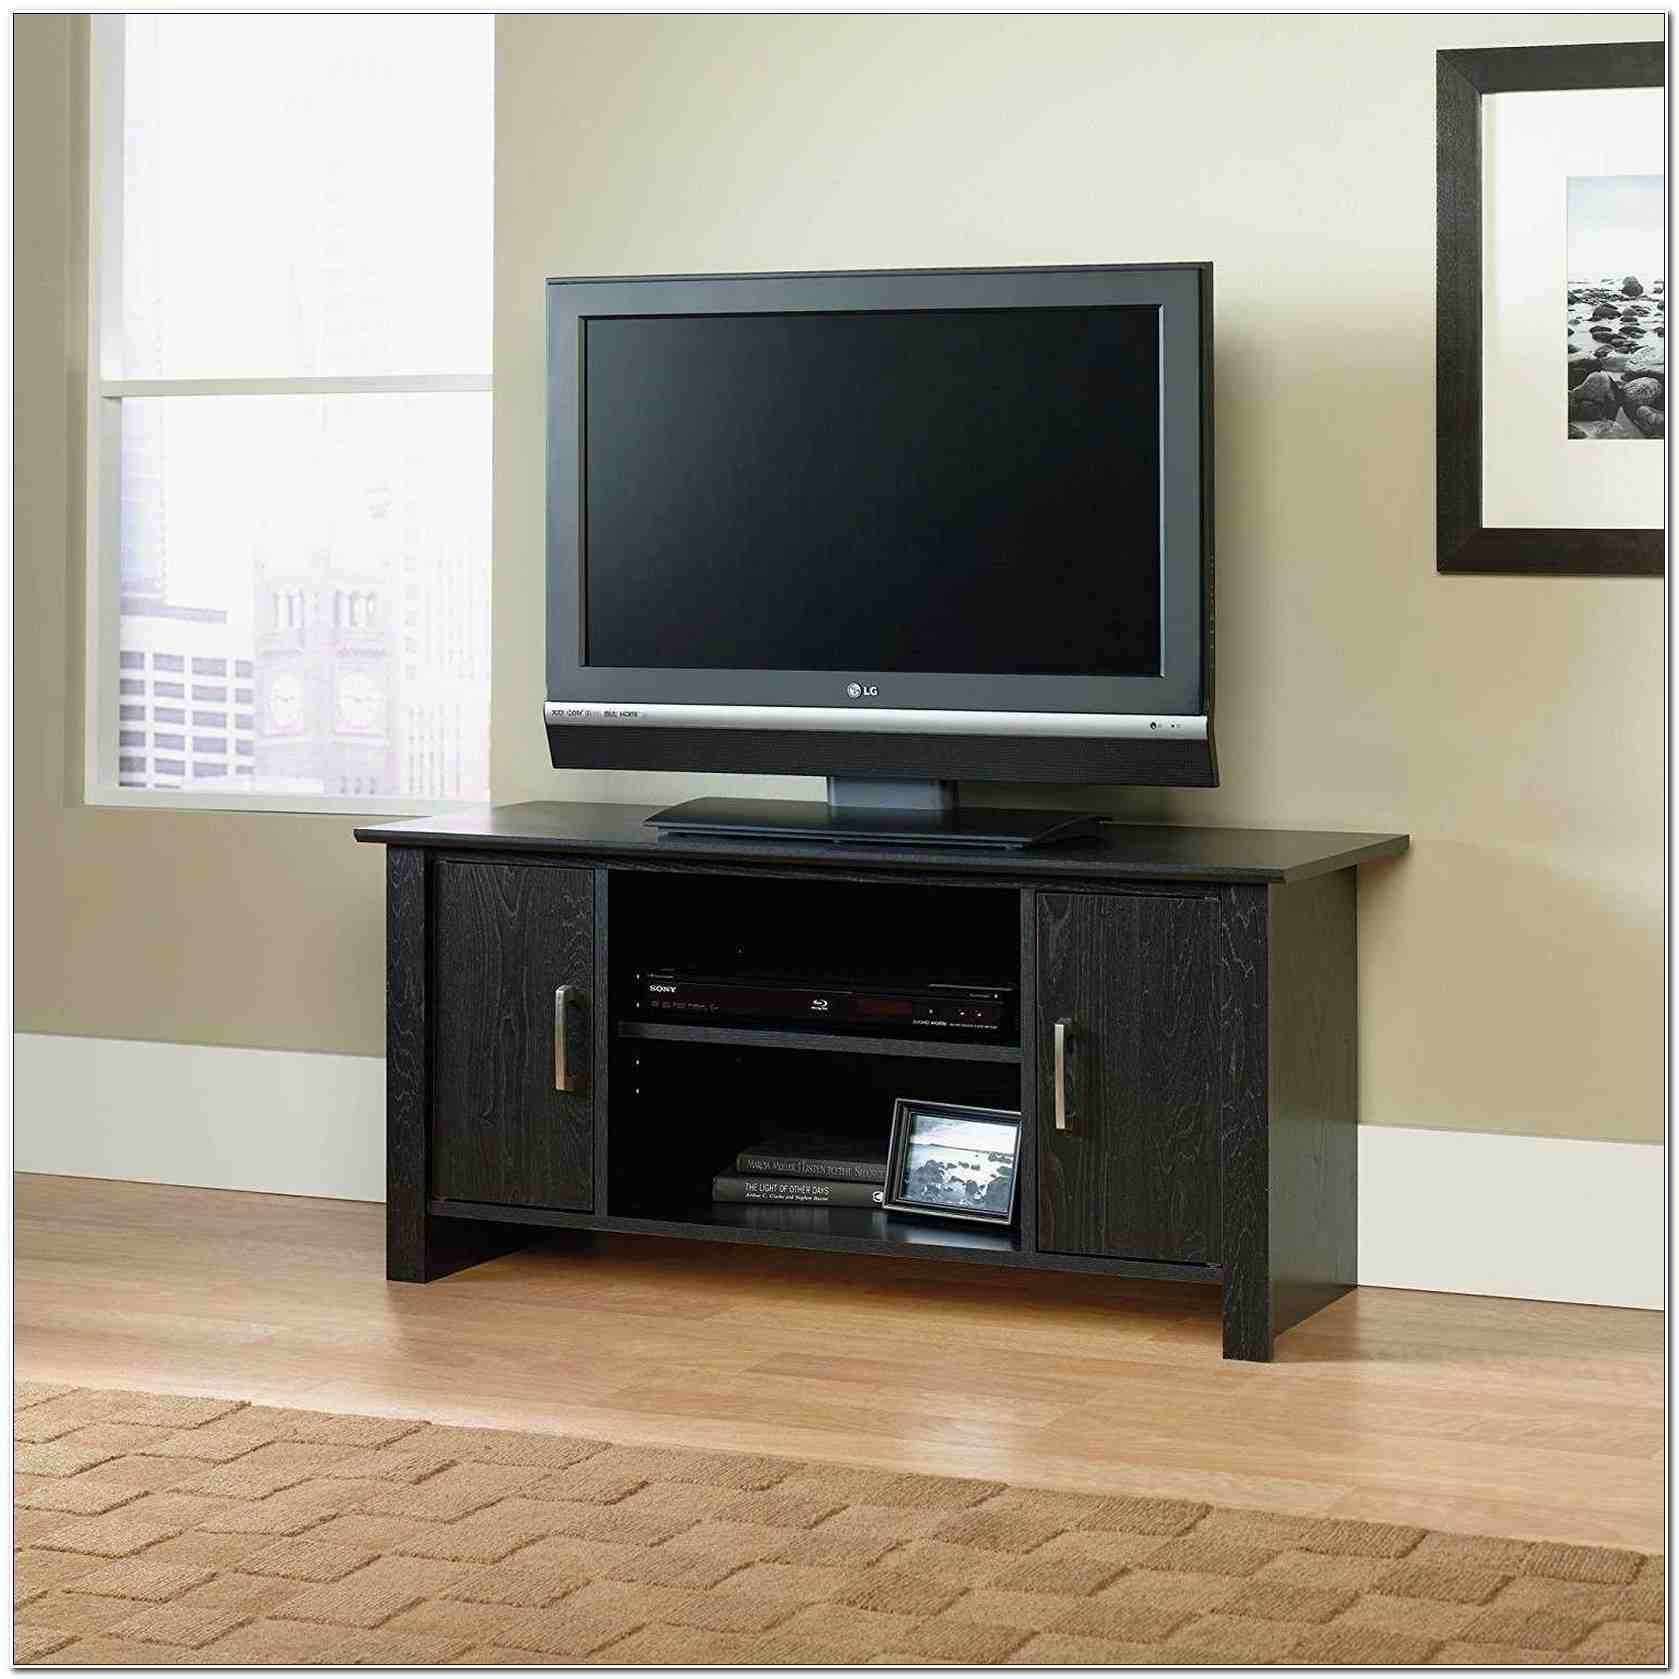 Best Bedroom Tv Stands For Flat Screens – Bedroom Ideas With Pictures